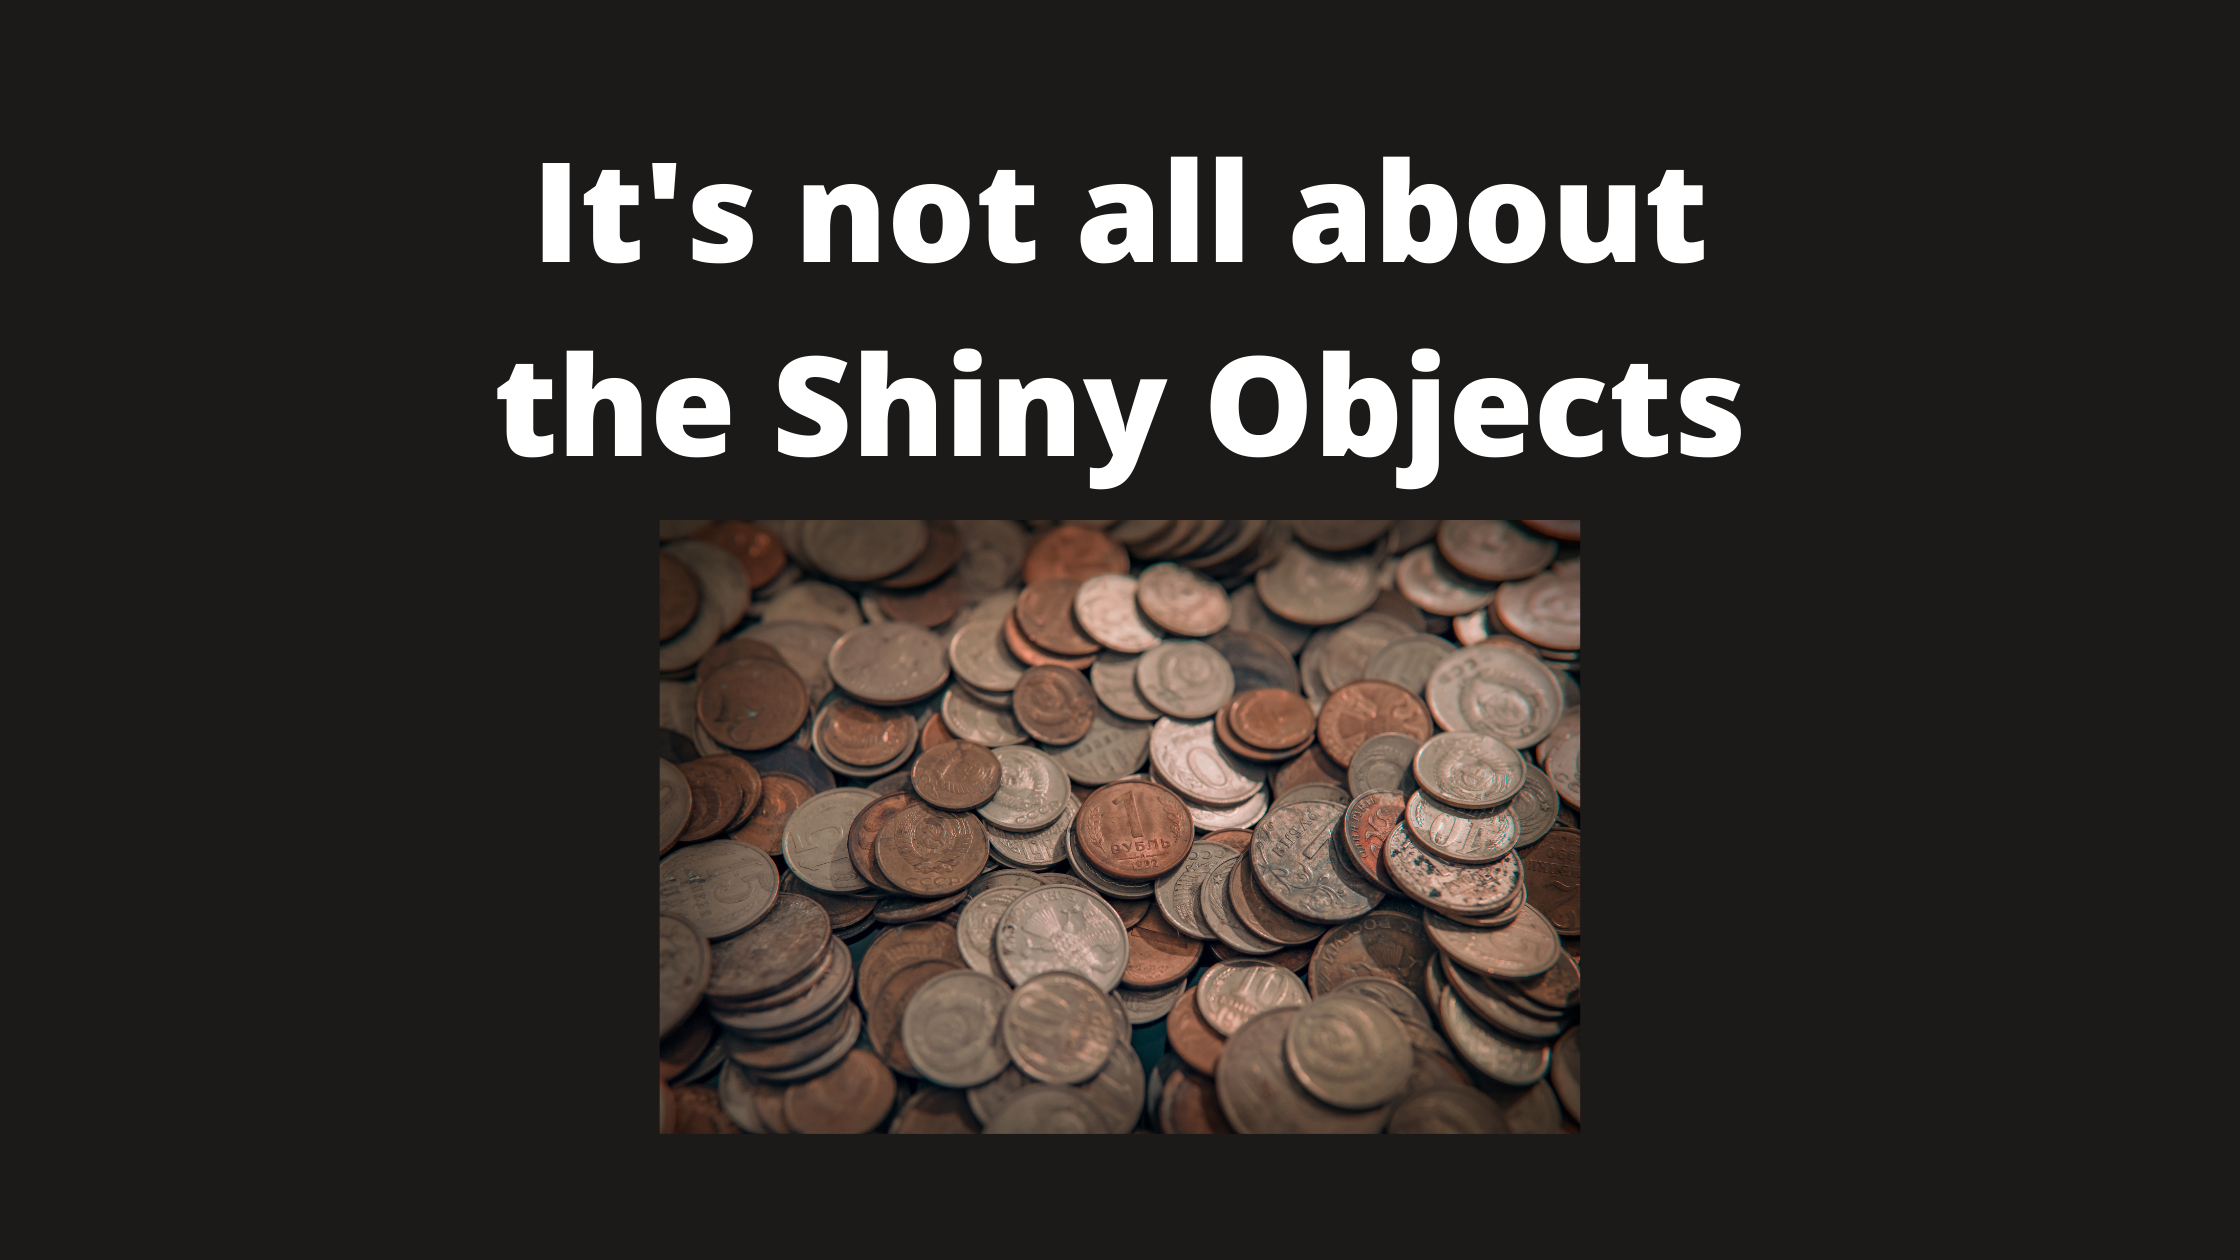 It's not all about the Shiny Objects